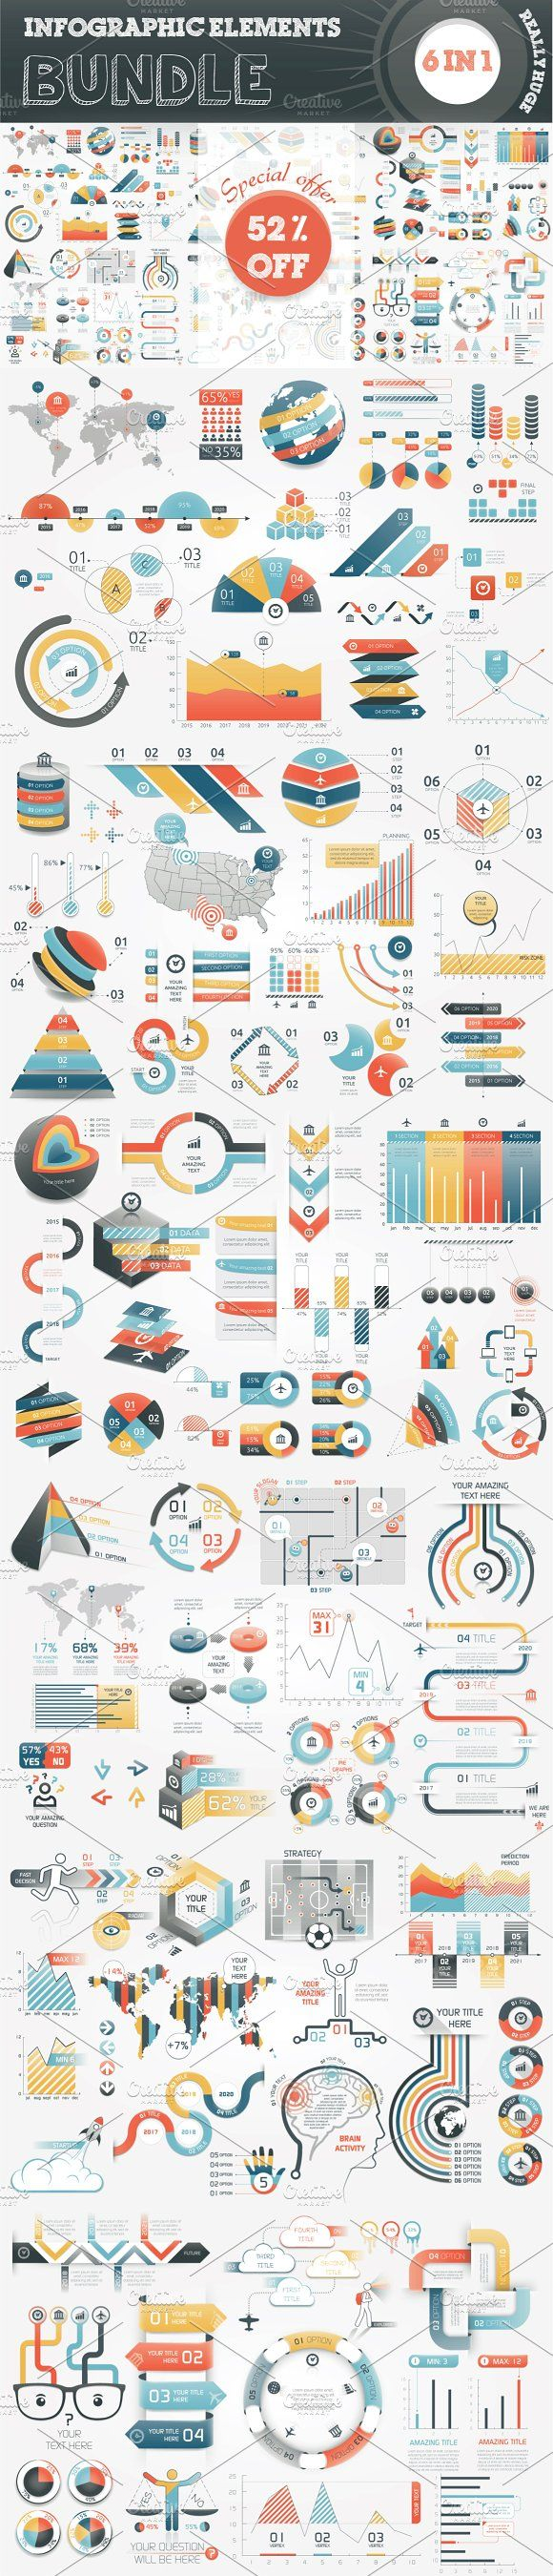 @newkoko2020 52% OFF Infographic Bundle by Infographic Paradise on @creativemarket #infographic #infographics #bundle #download #design #template #set #presentation #vector #buy #graph #discount